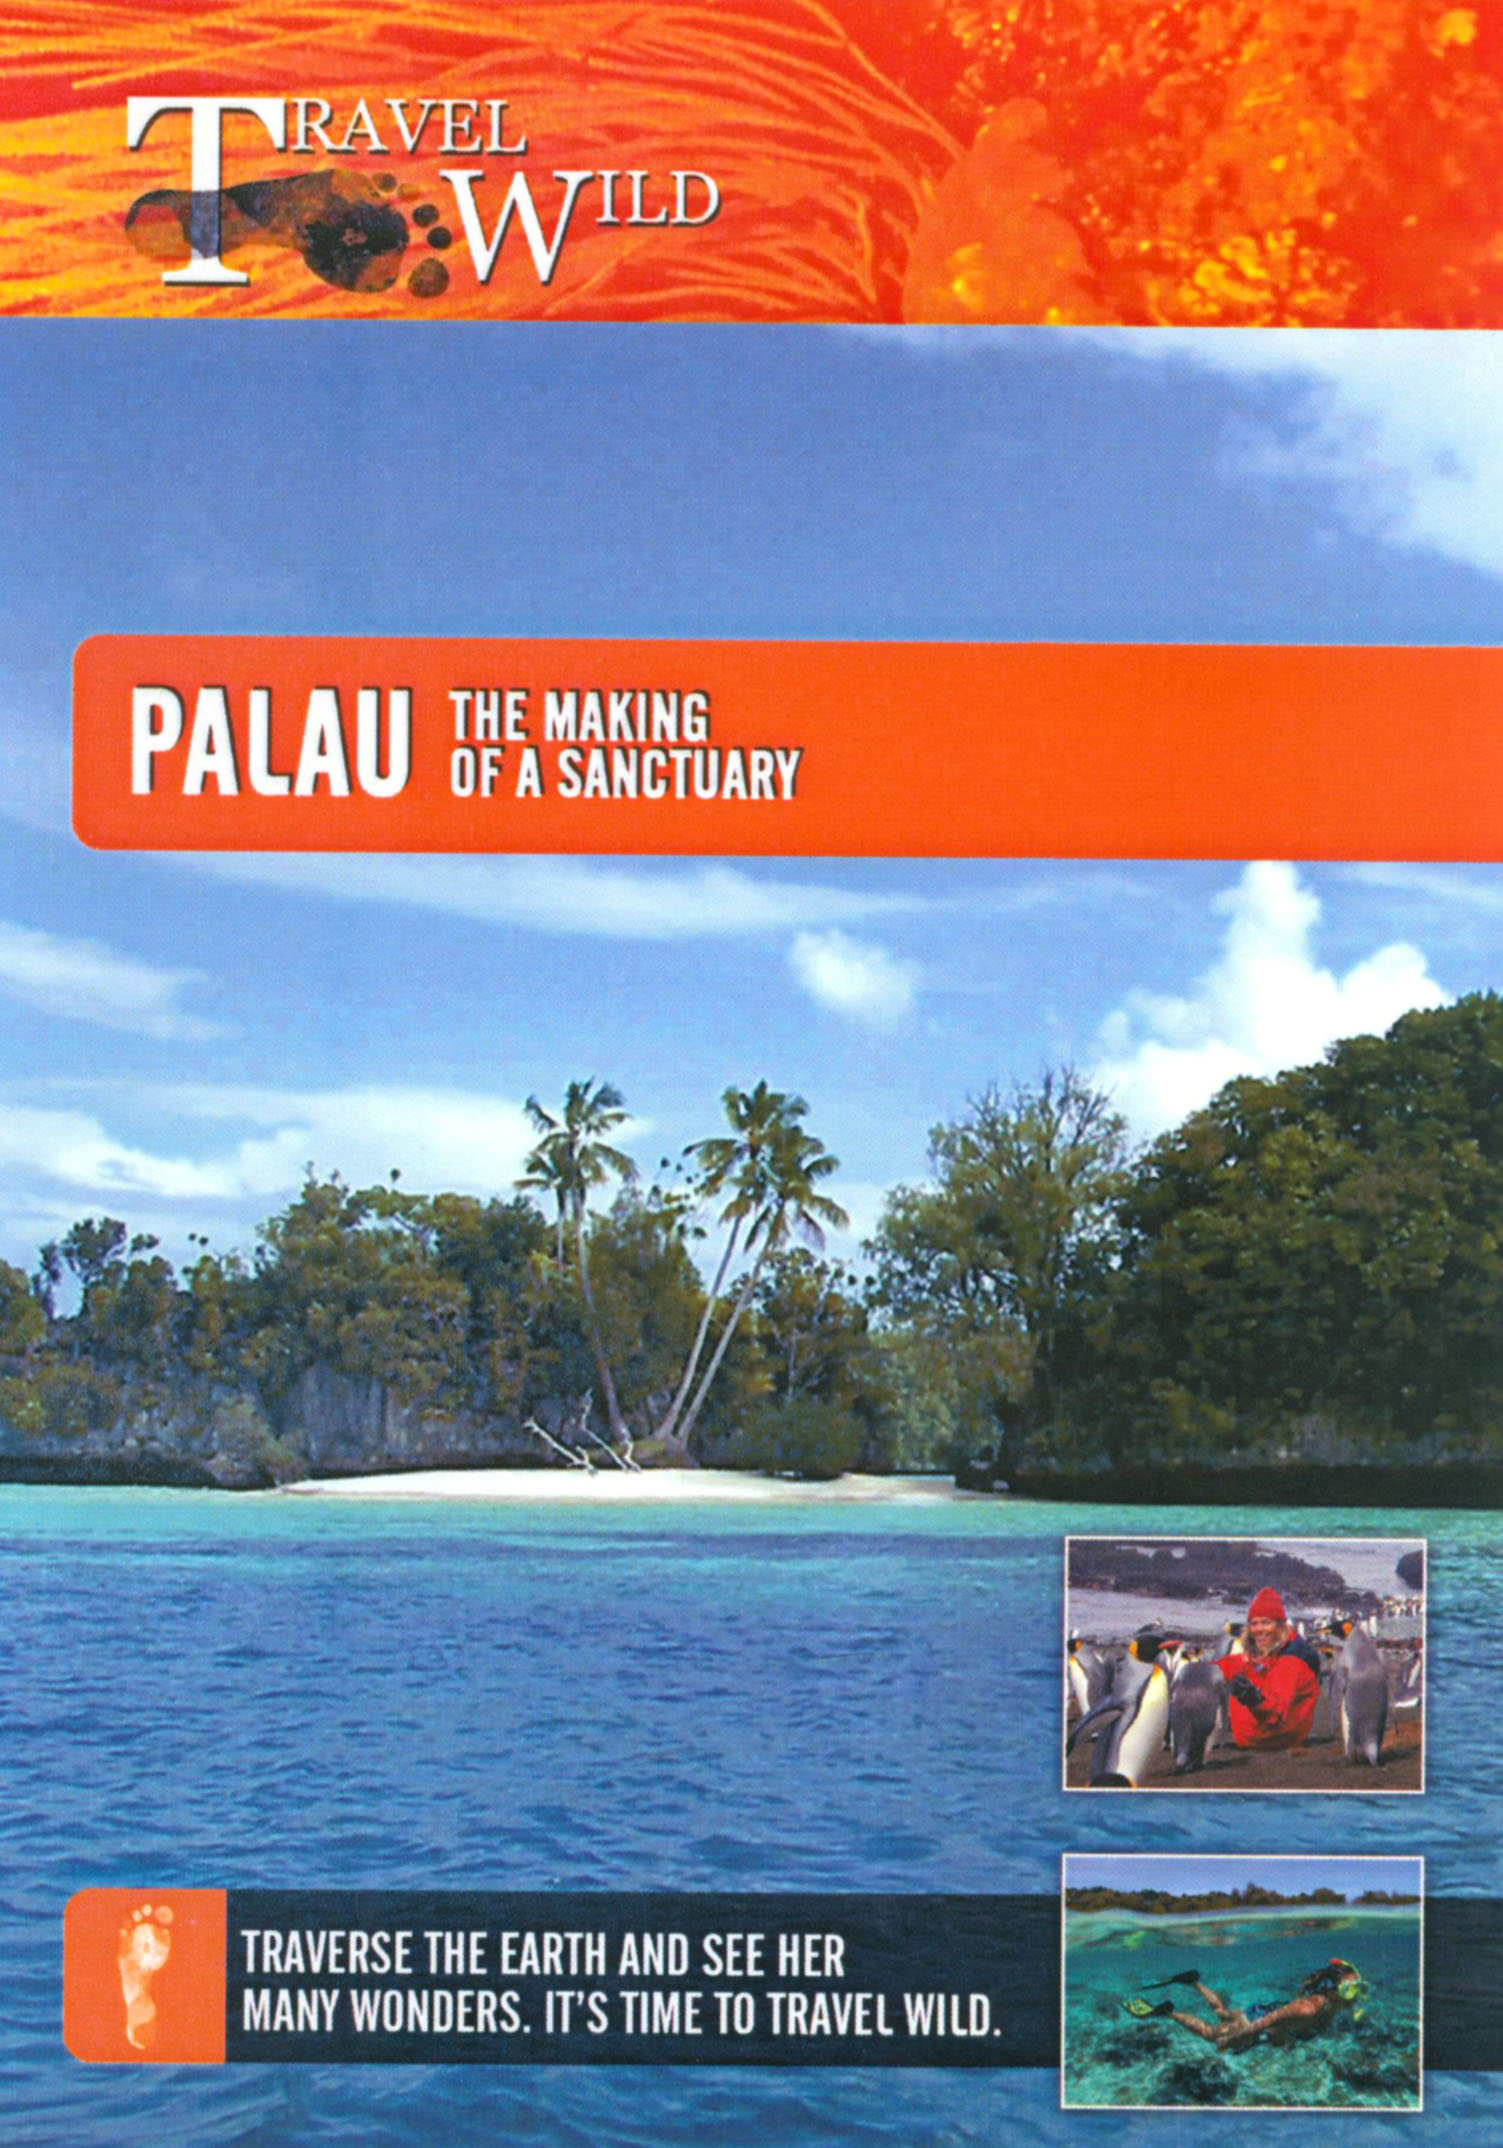 Travel Wild: Palau - The Making of a Sanctuary